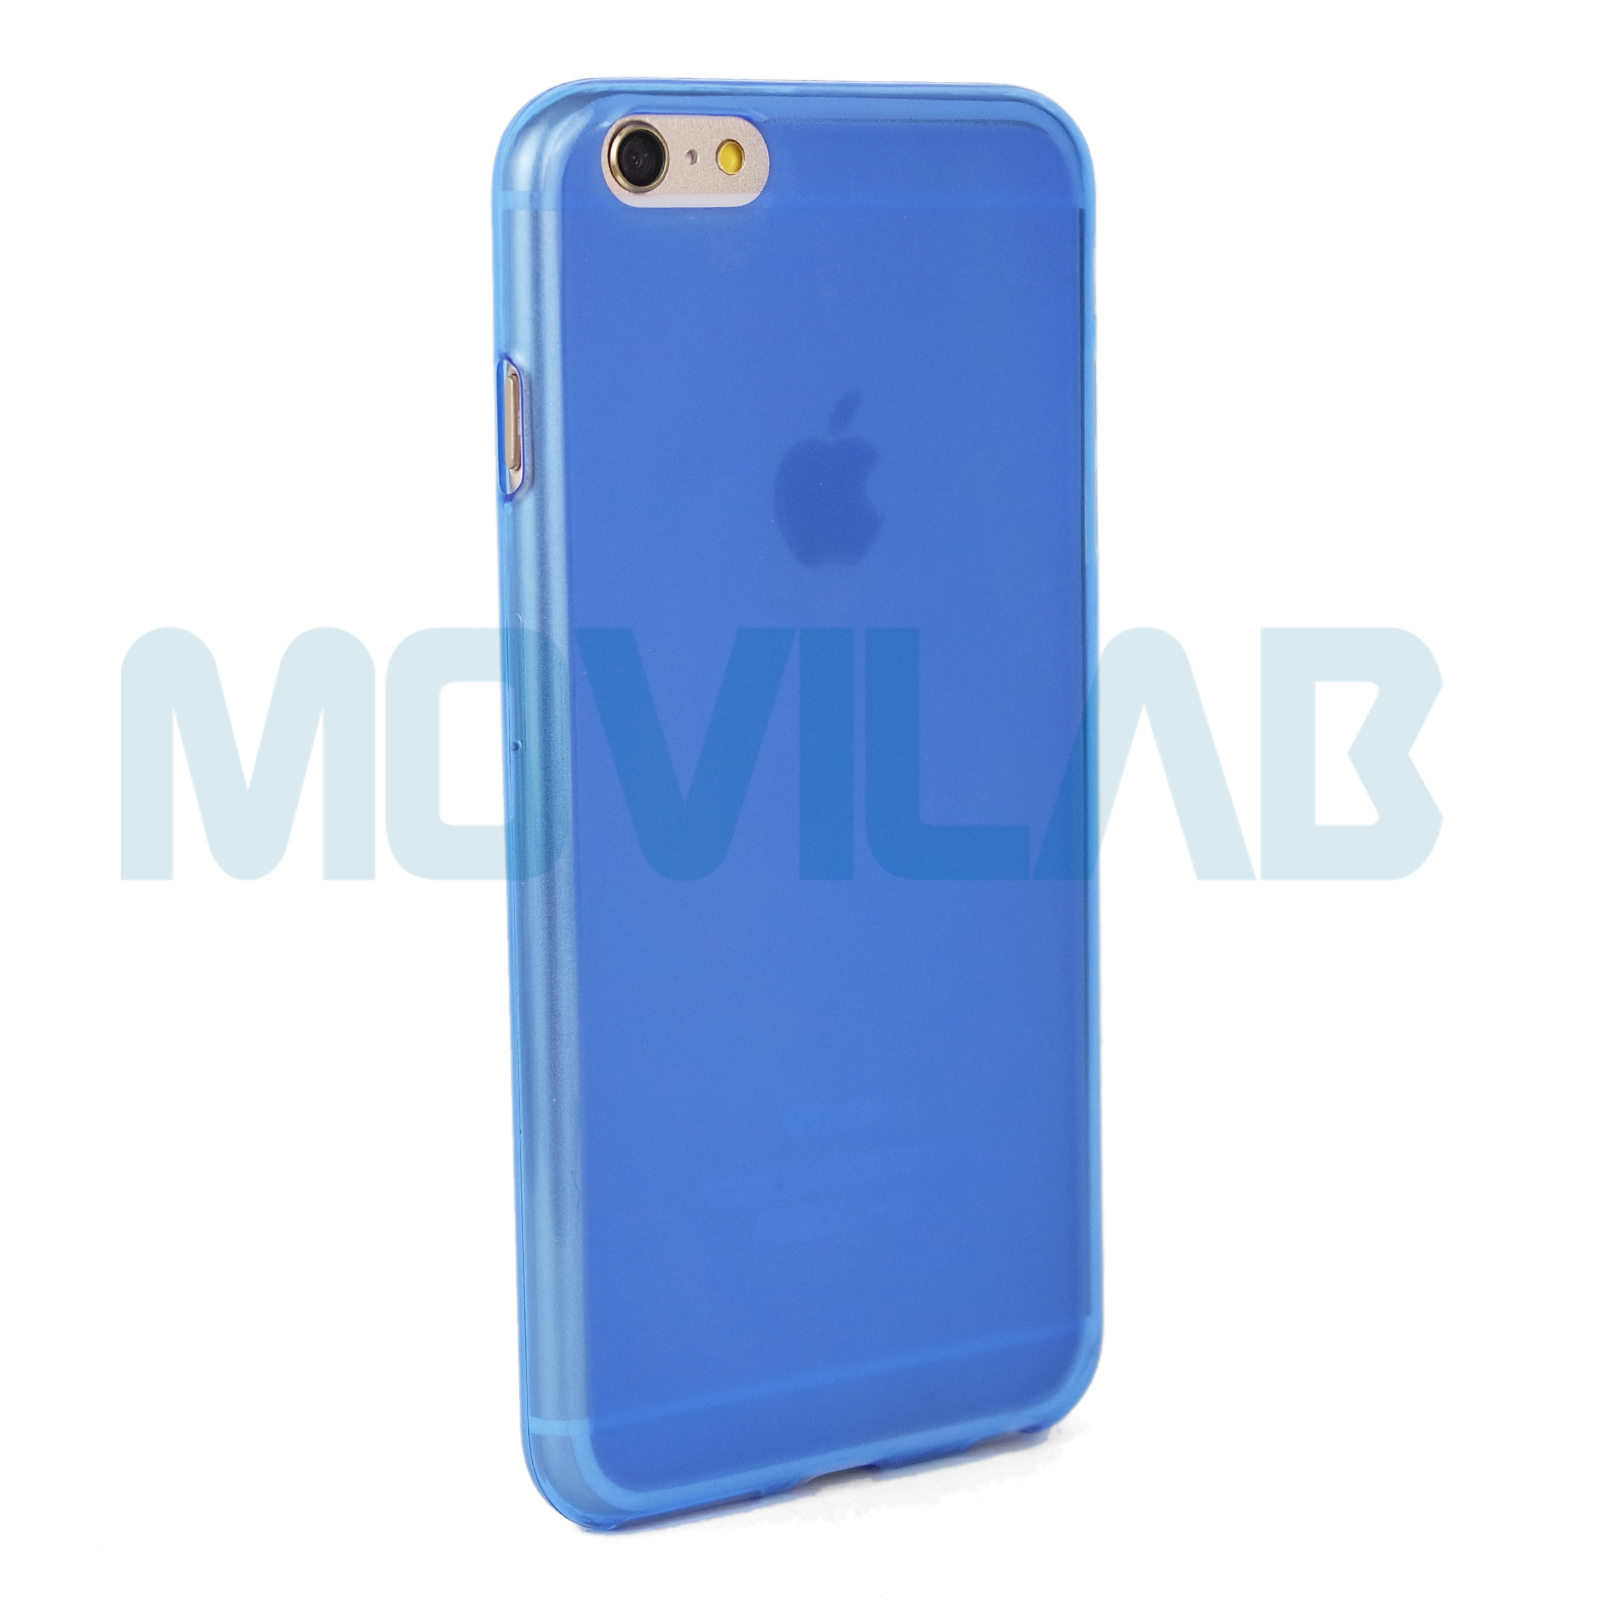 Funda gel Iphone 6 Plus azul